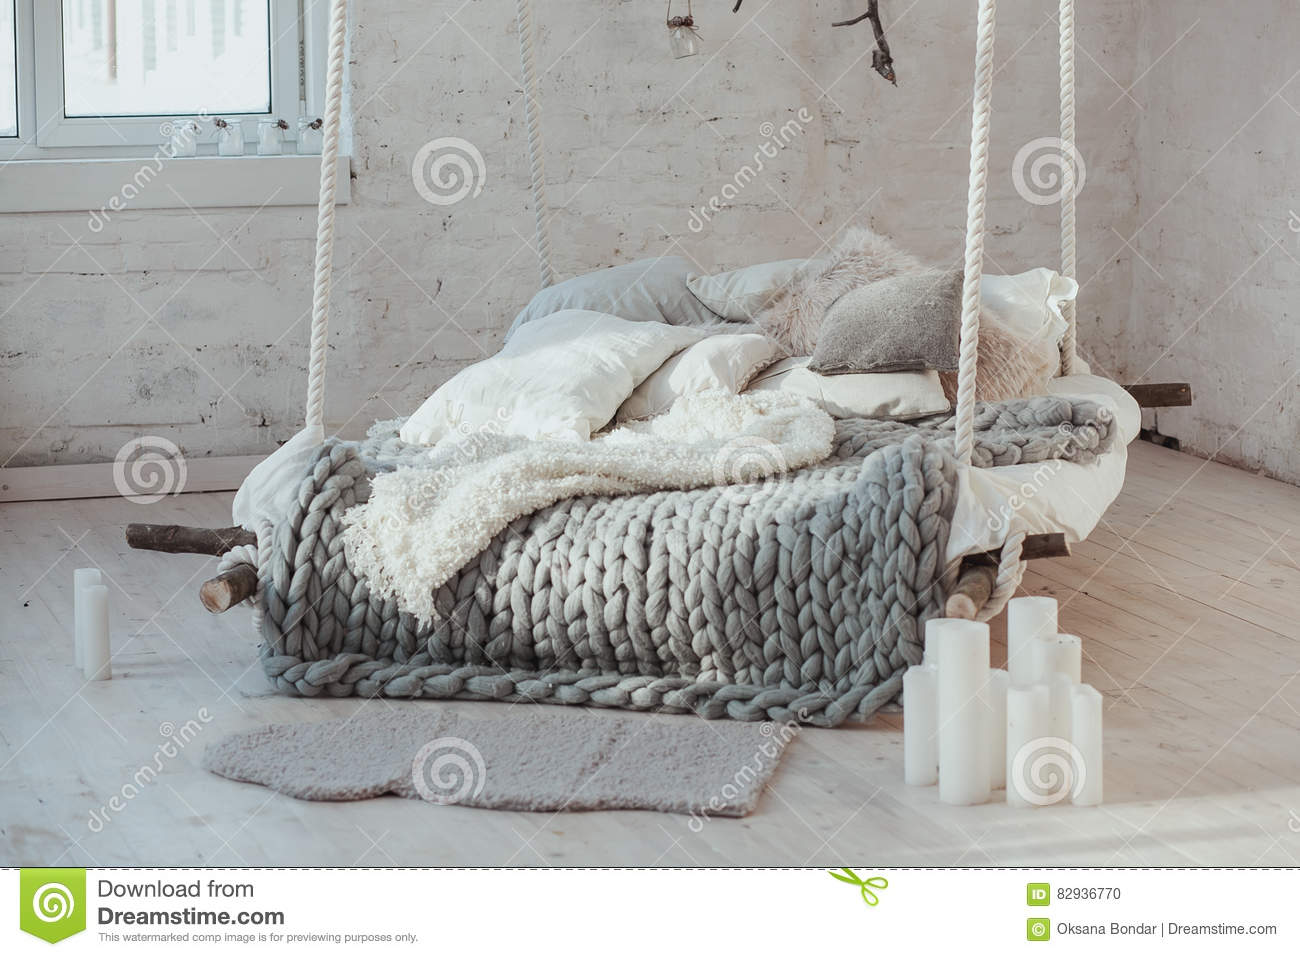 dc29b773003 The Bed Suspended From The Ceiling. Grey Big Cozy Blanket Knit ...